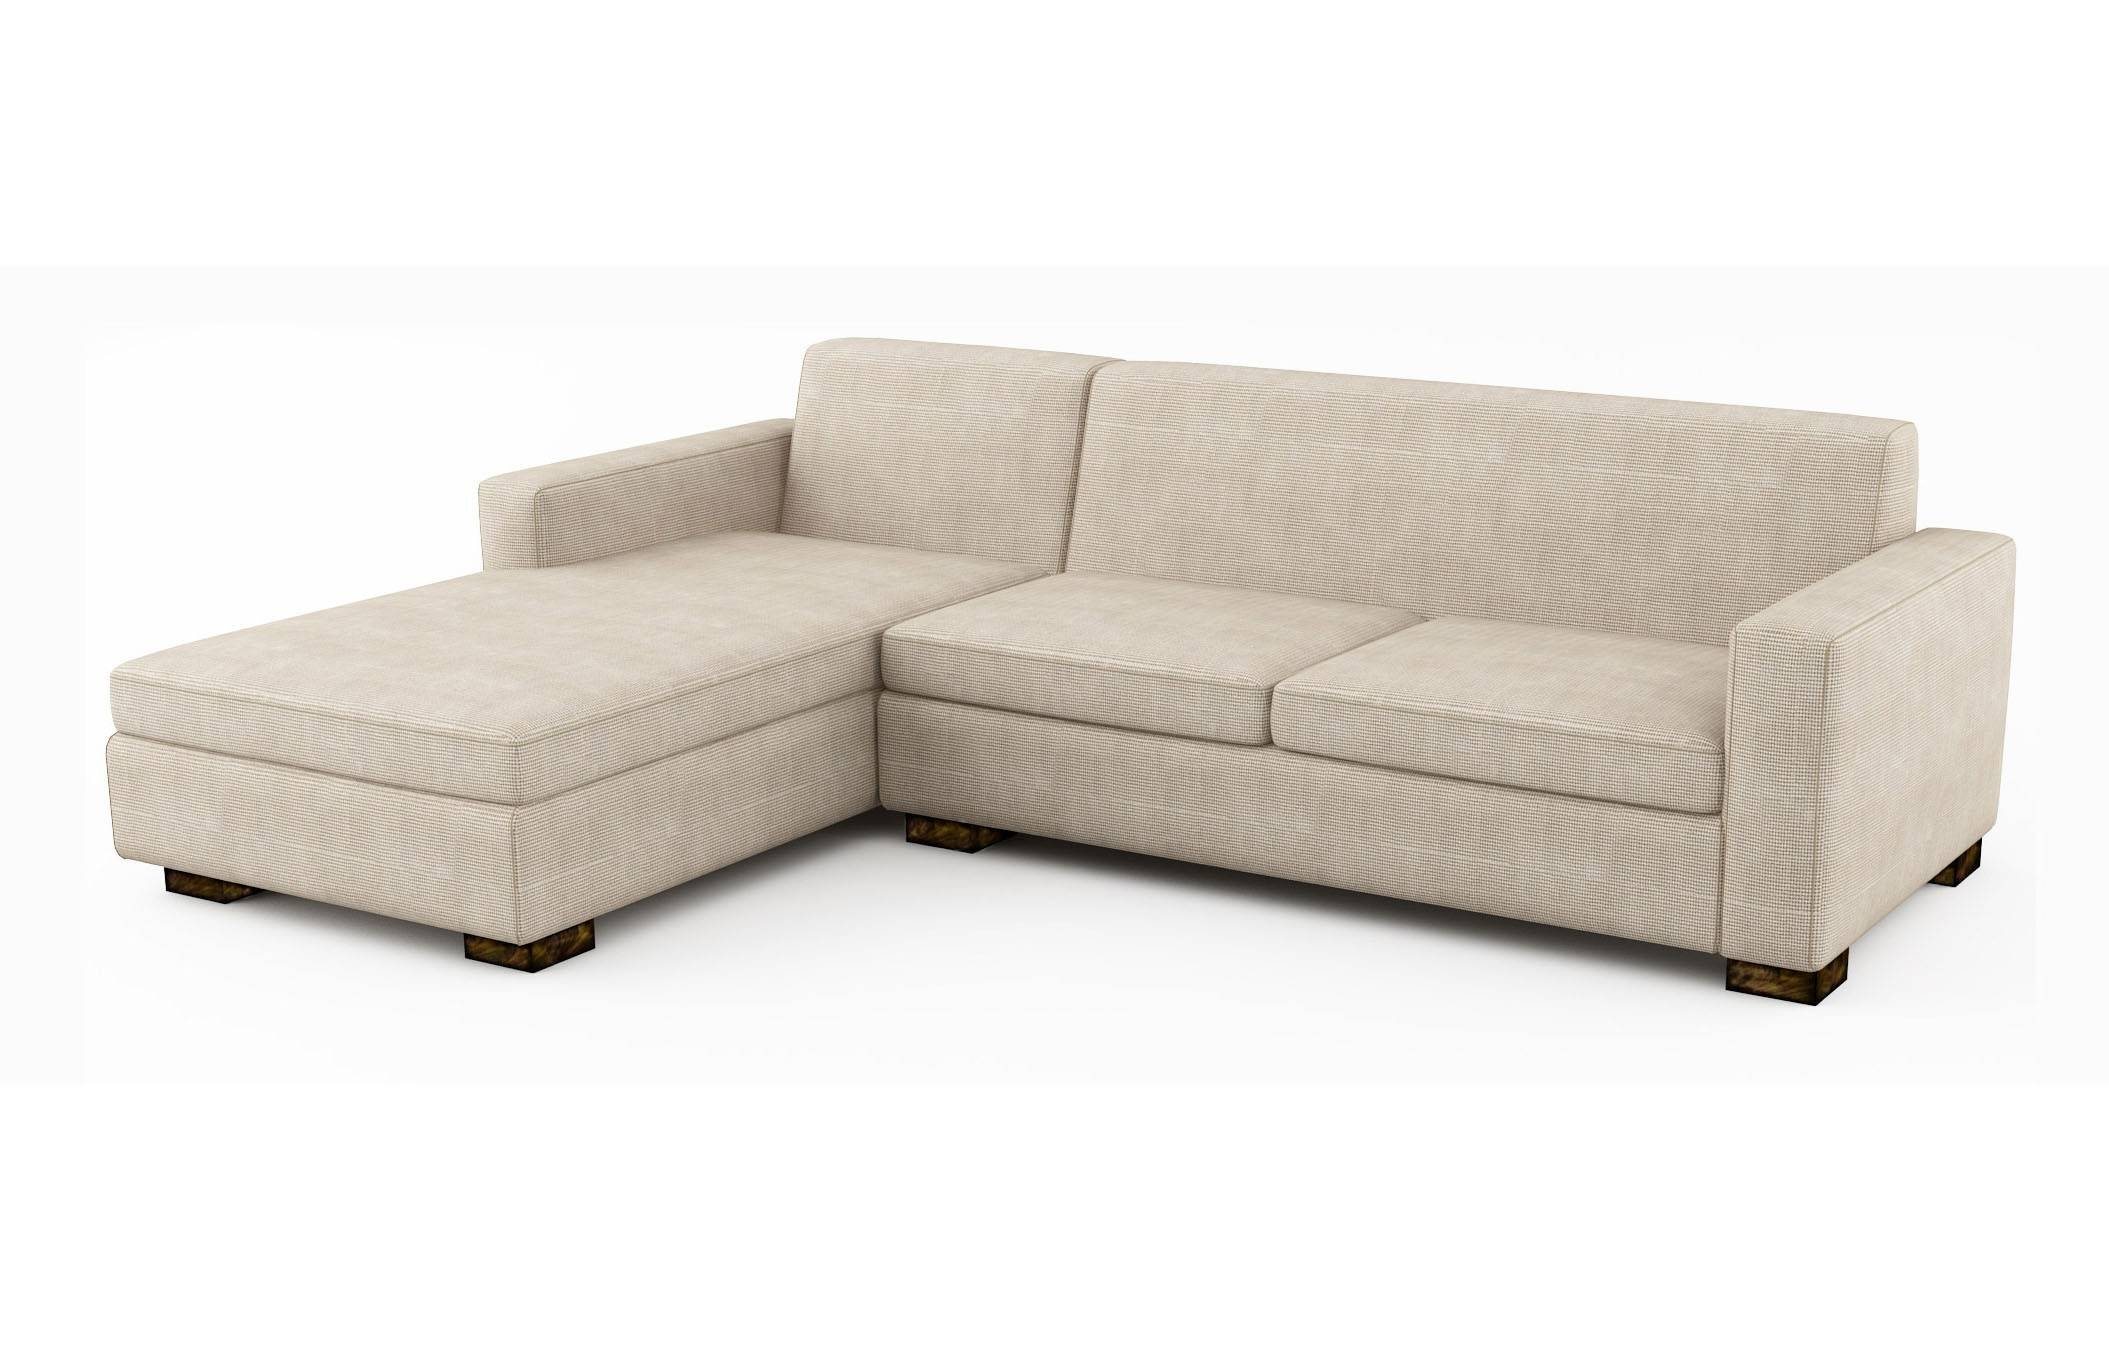 Brenem Chaise Sectional With Sofa Bed | Viesso Throughout Cushion Sofa Beds (View 3 of 30)